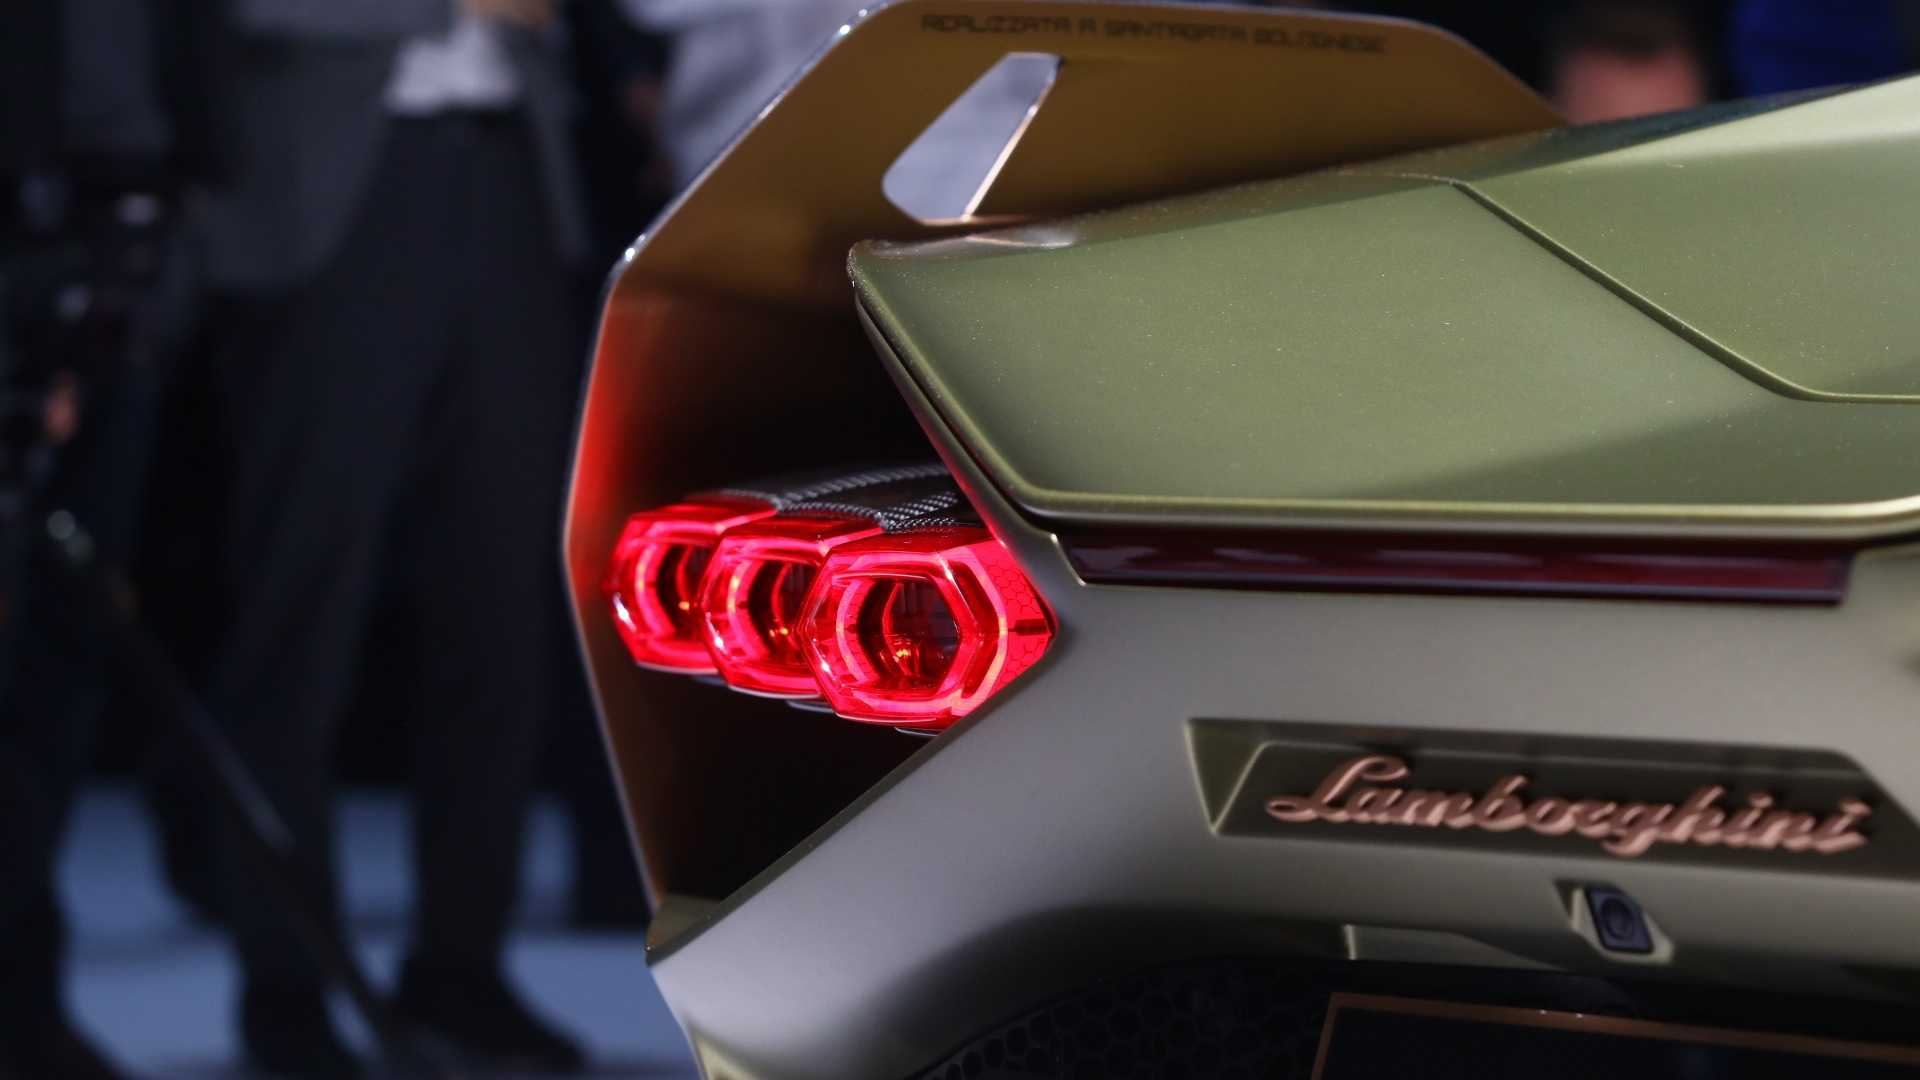 Lamborghini Teaser Confirms That Upcoming New Model Is Sian-Related